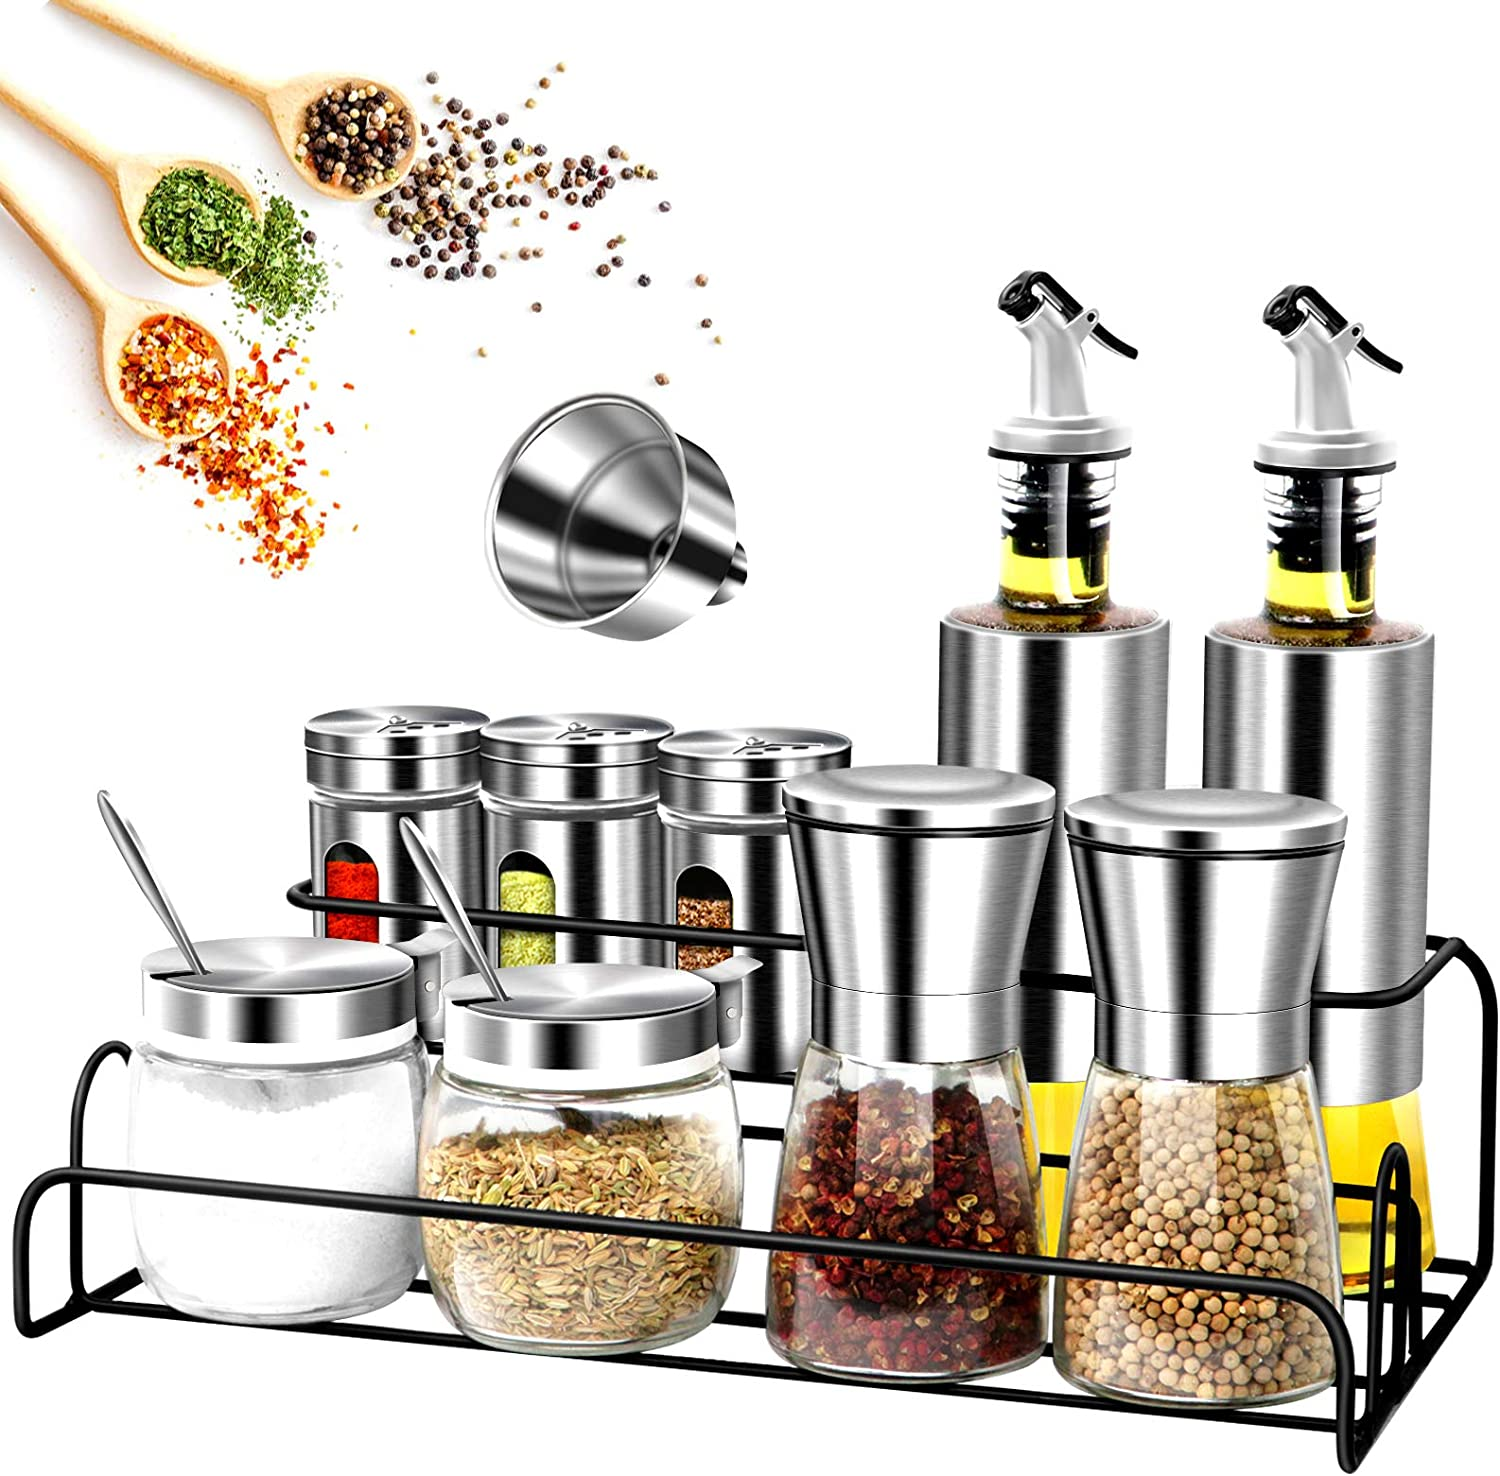 13Pcs Spice Containers Sacramento Mall Glass Set 2021 new Salt Rack with Include a